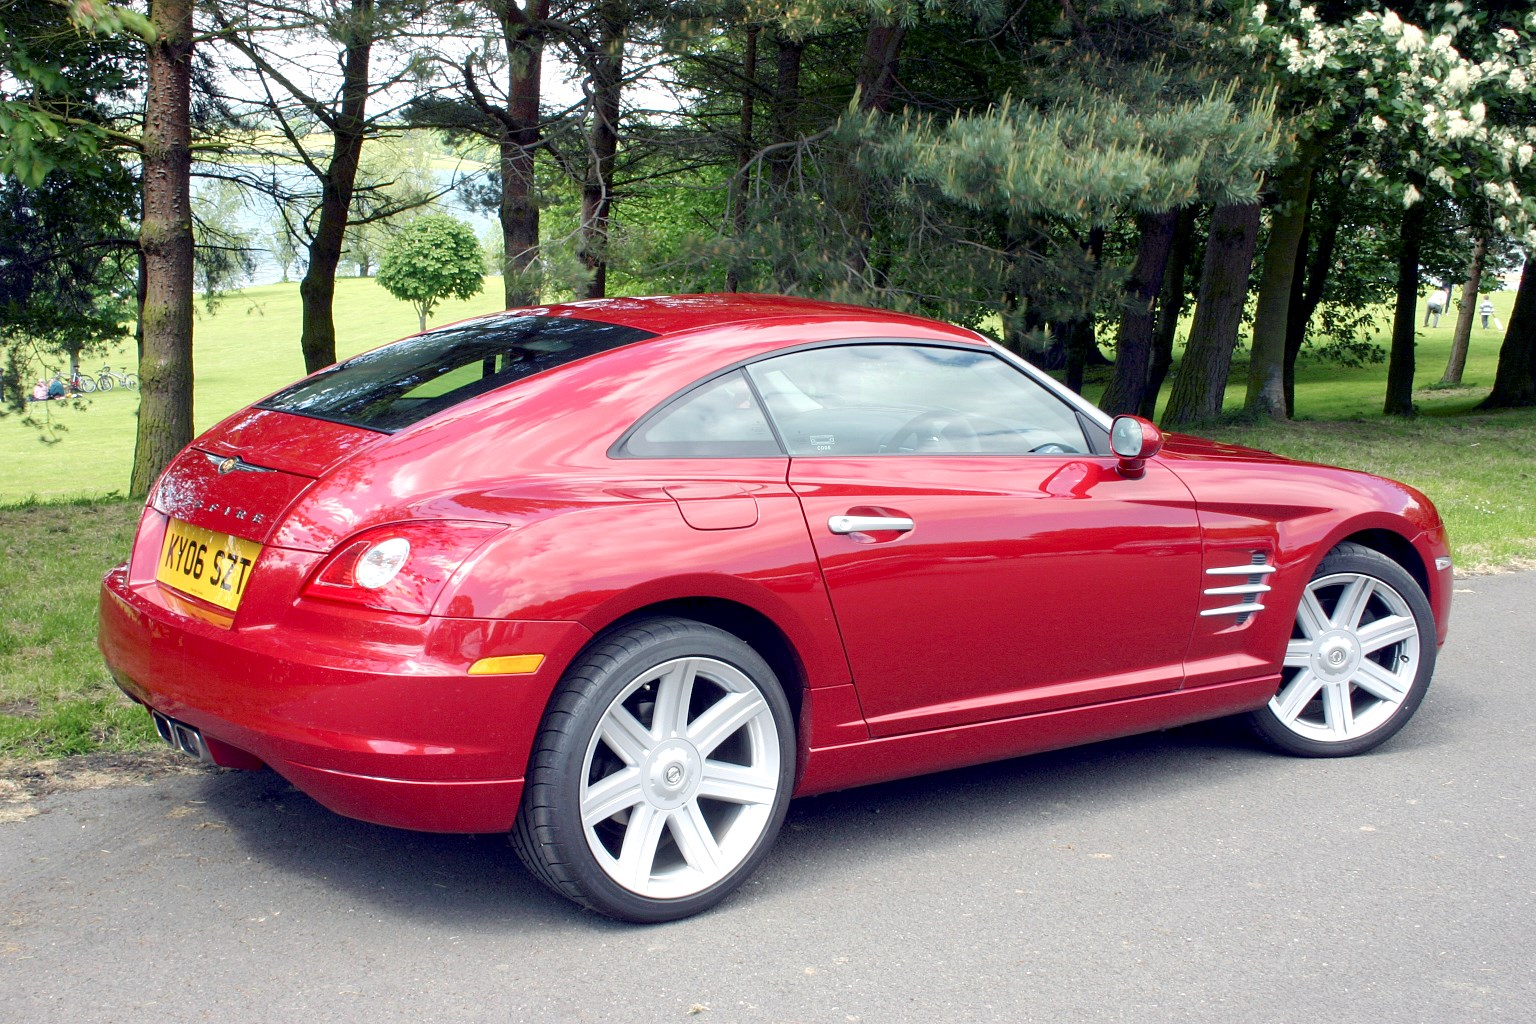 Chrysler crossfire workshop manual array 2006 chrysler crossfire owners manual by quincyplummer issuu rh induced info fandeluxe Gallery